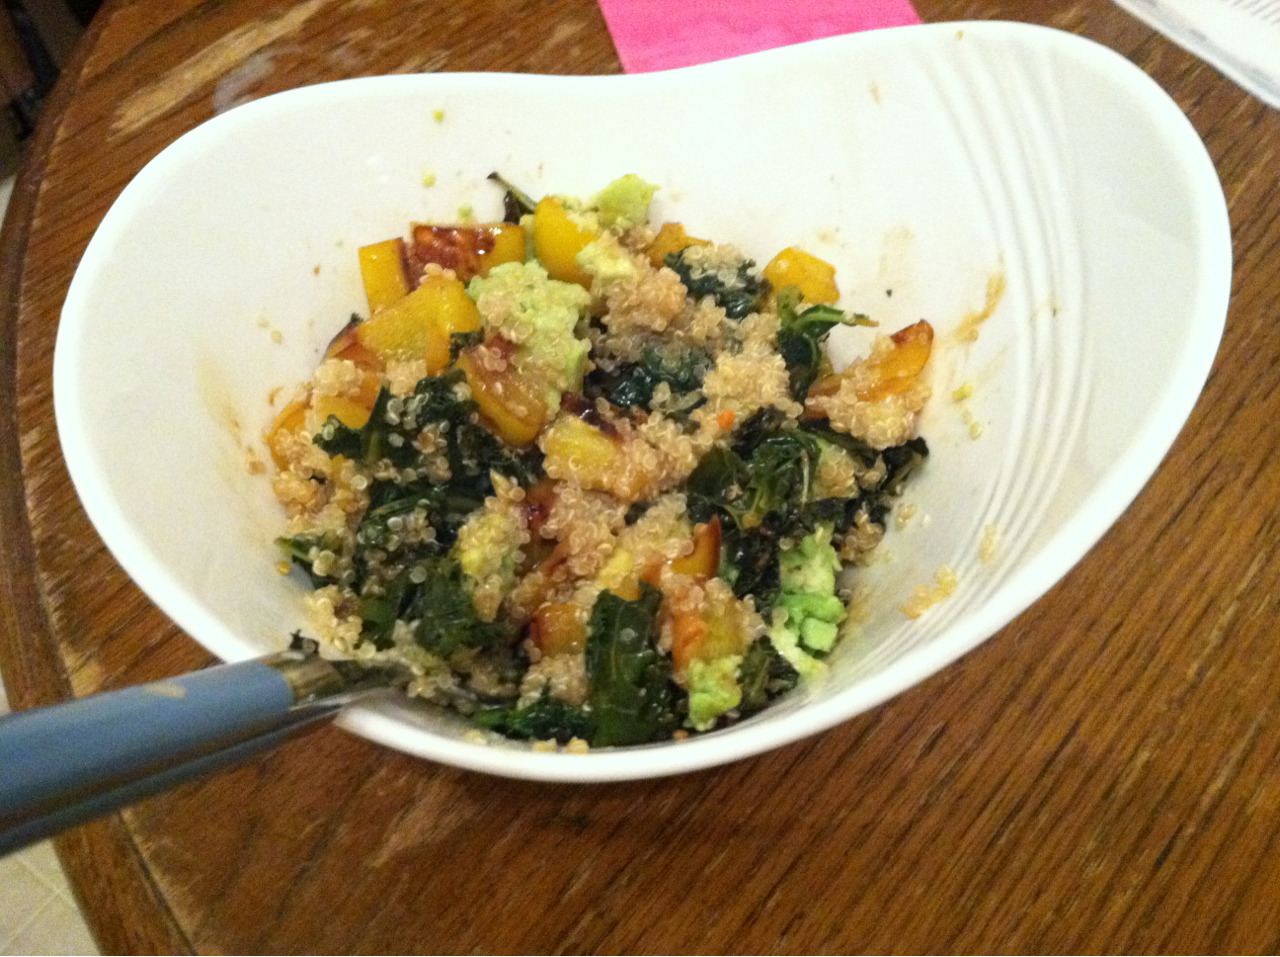 Quinoa, kale, bell pepper and avocado in a orange muscat champagne vinegar!